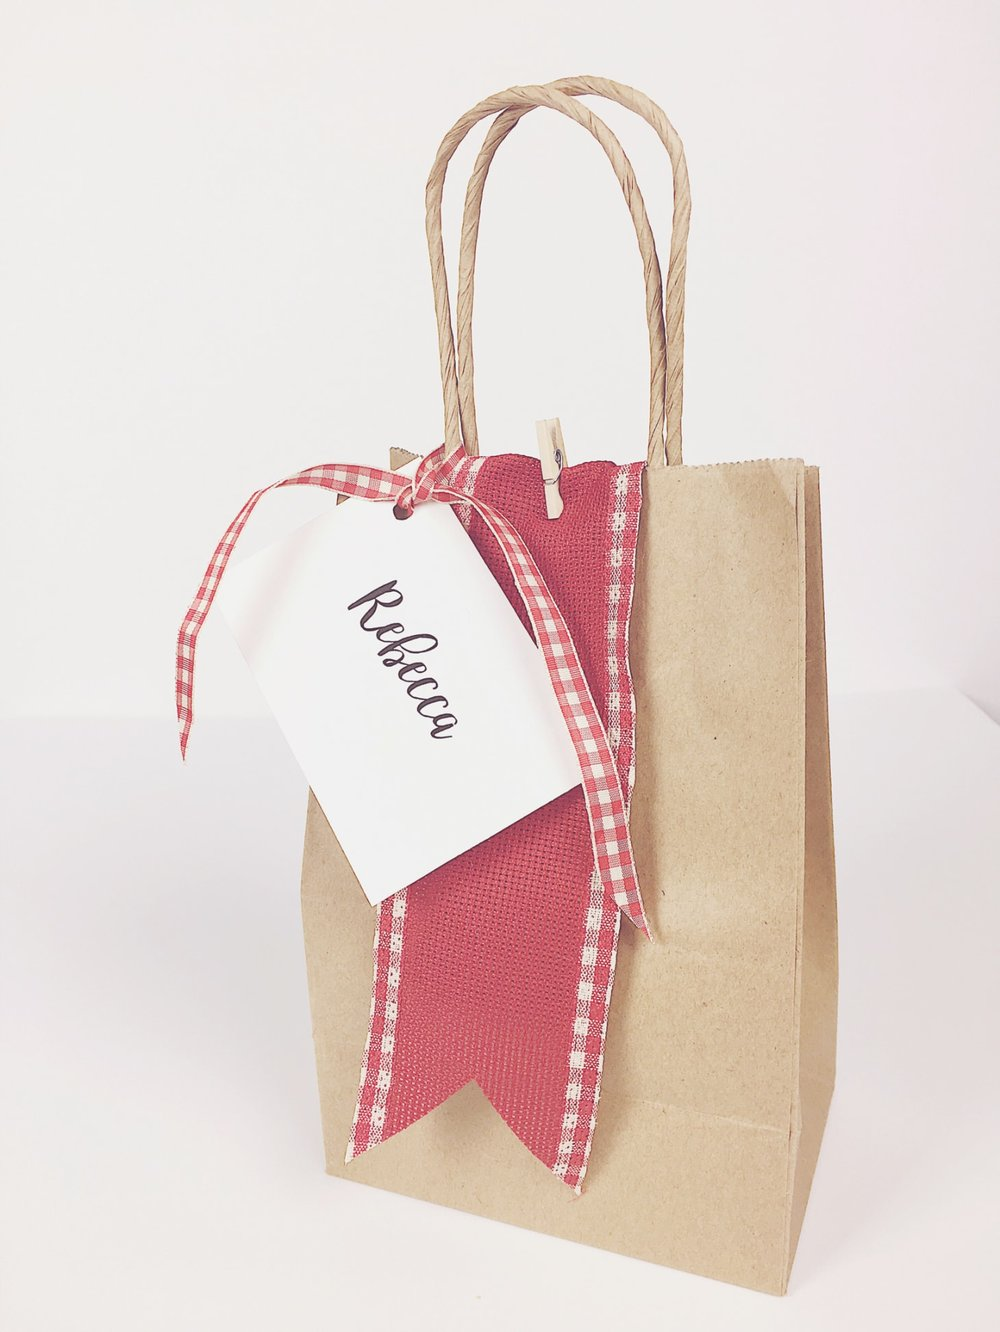 cocCocktail Gift Bagktail-gift-bag